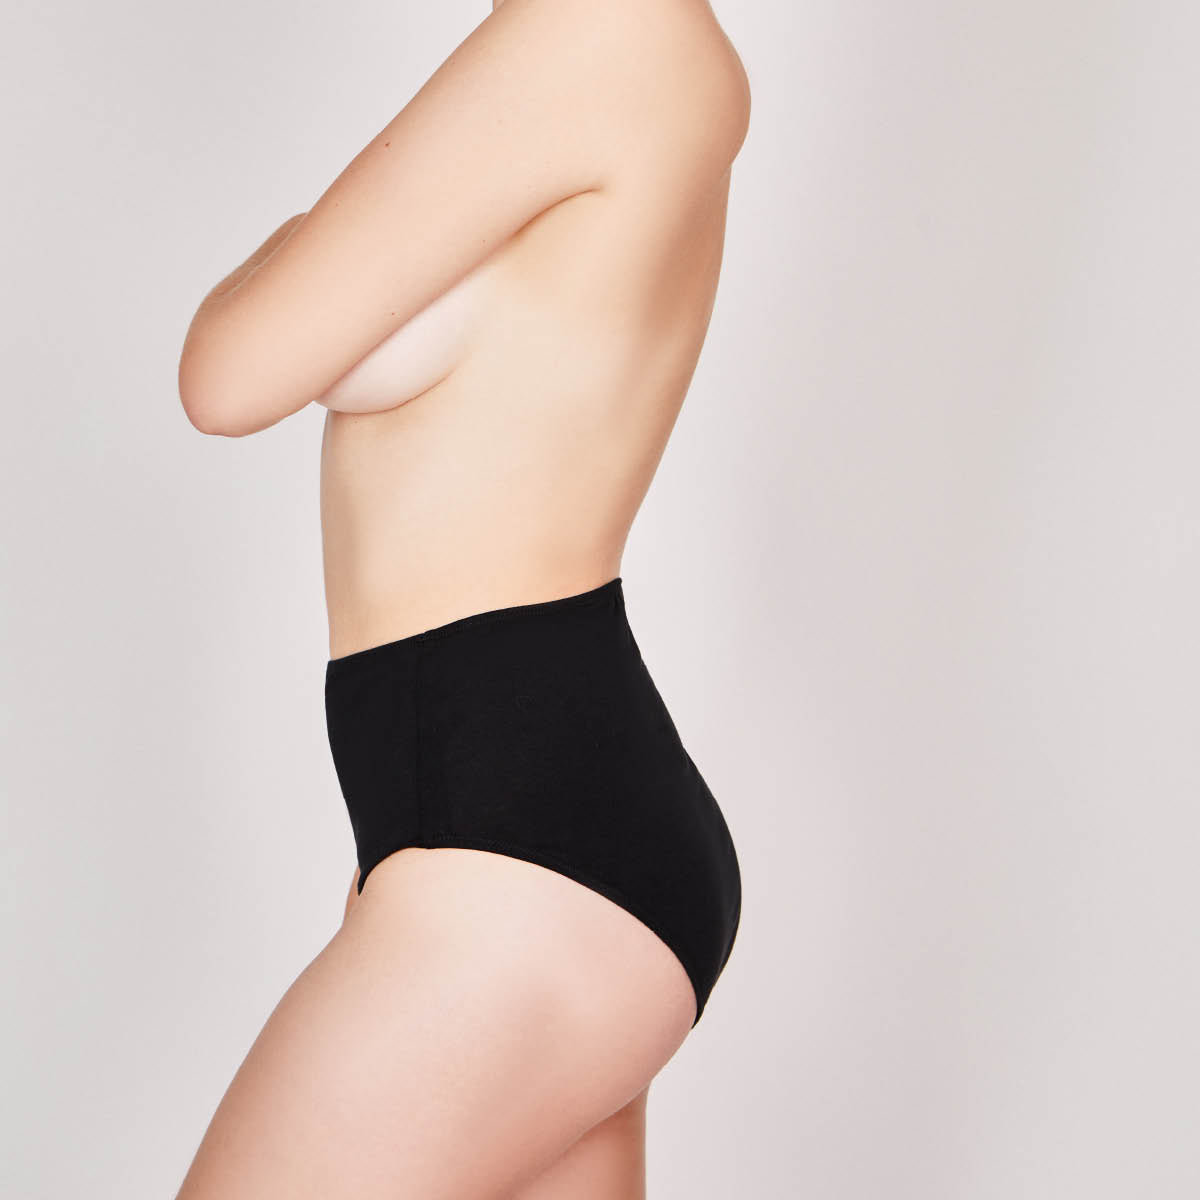 woman wearing black high waist cotton underwear